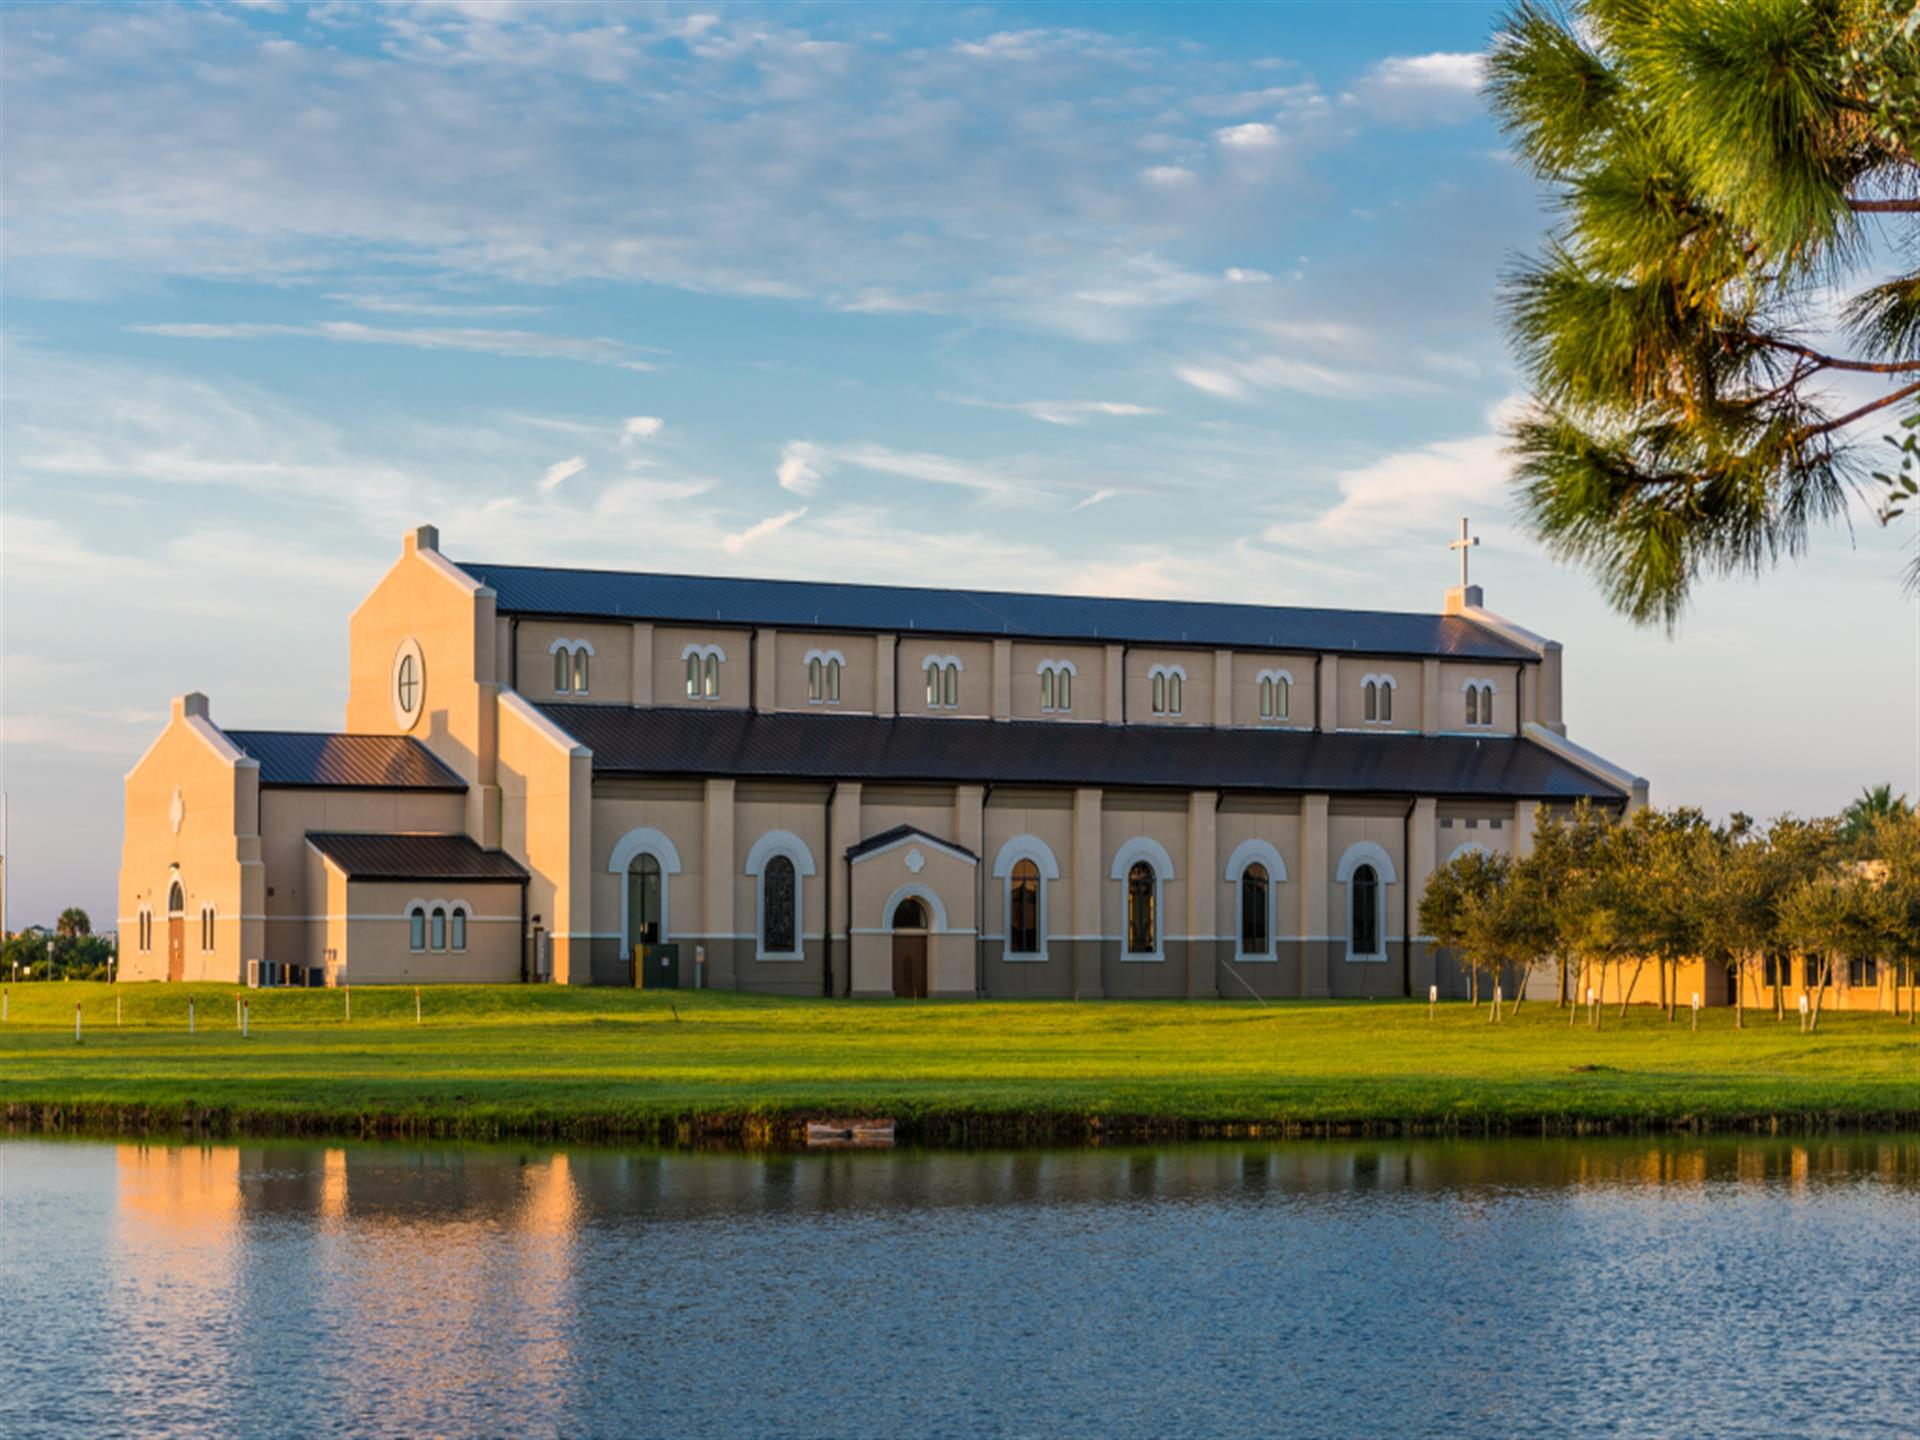 Exterior photo of church overlooking water